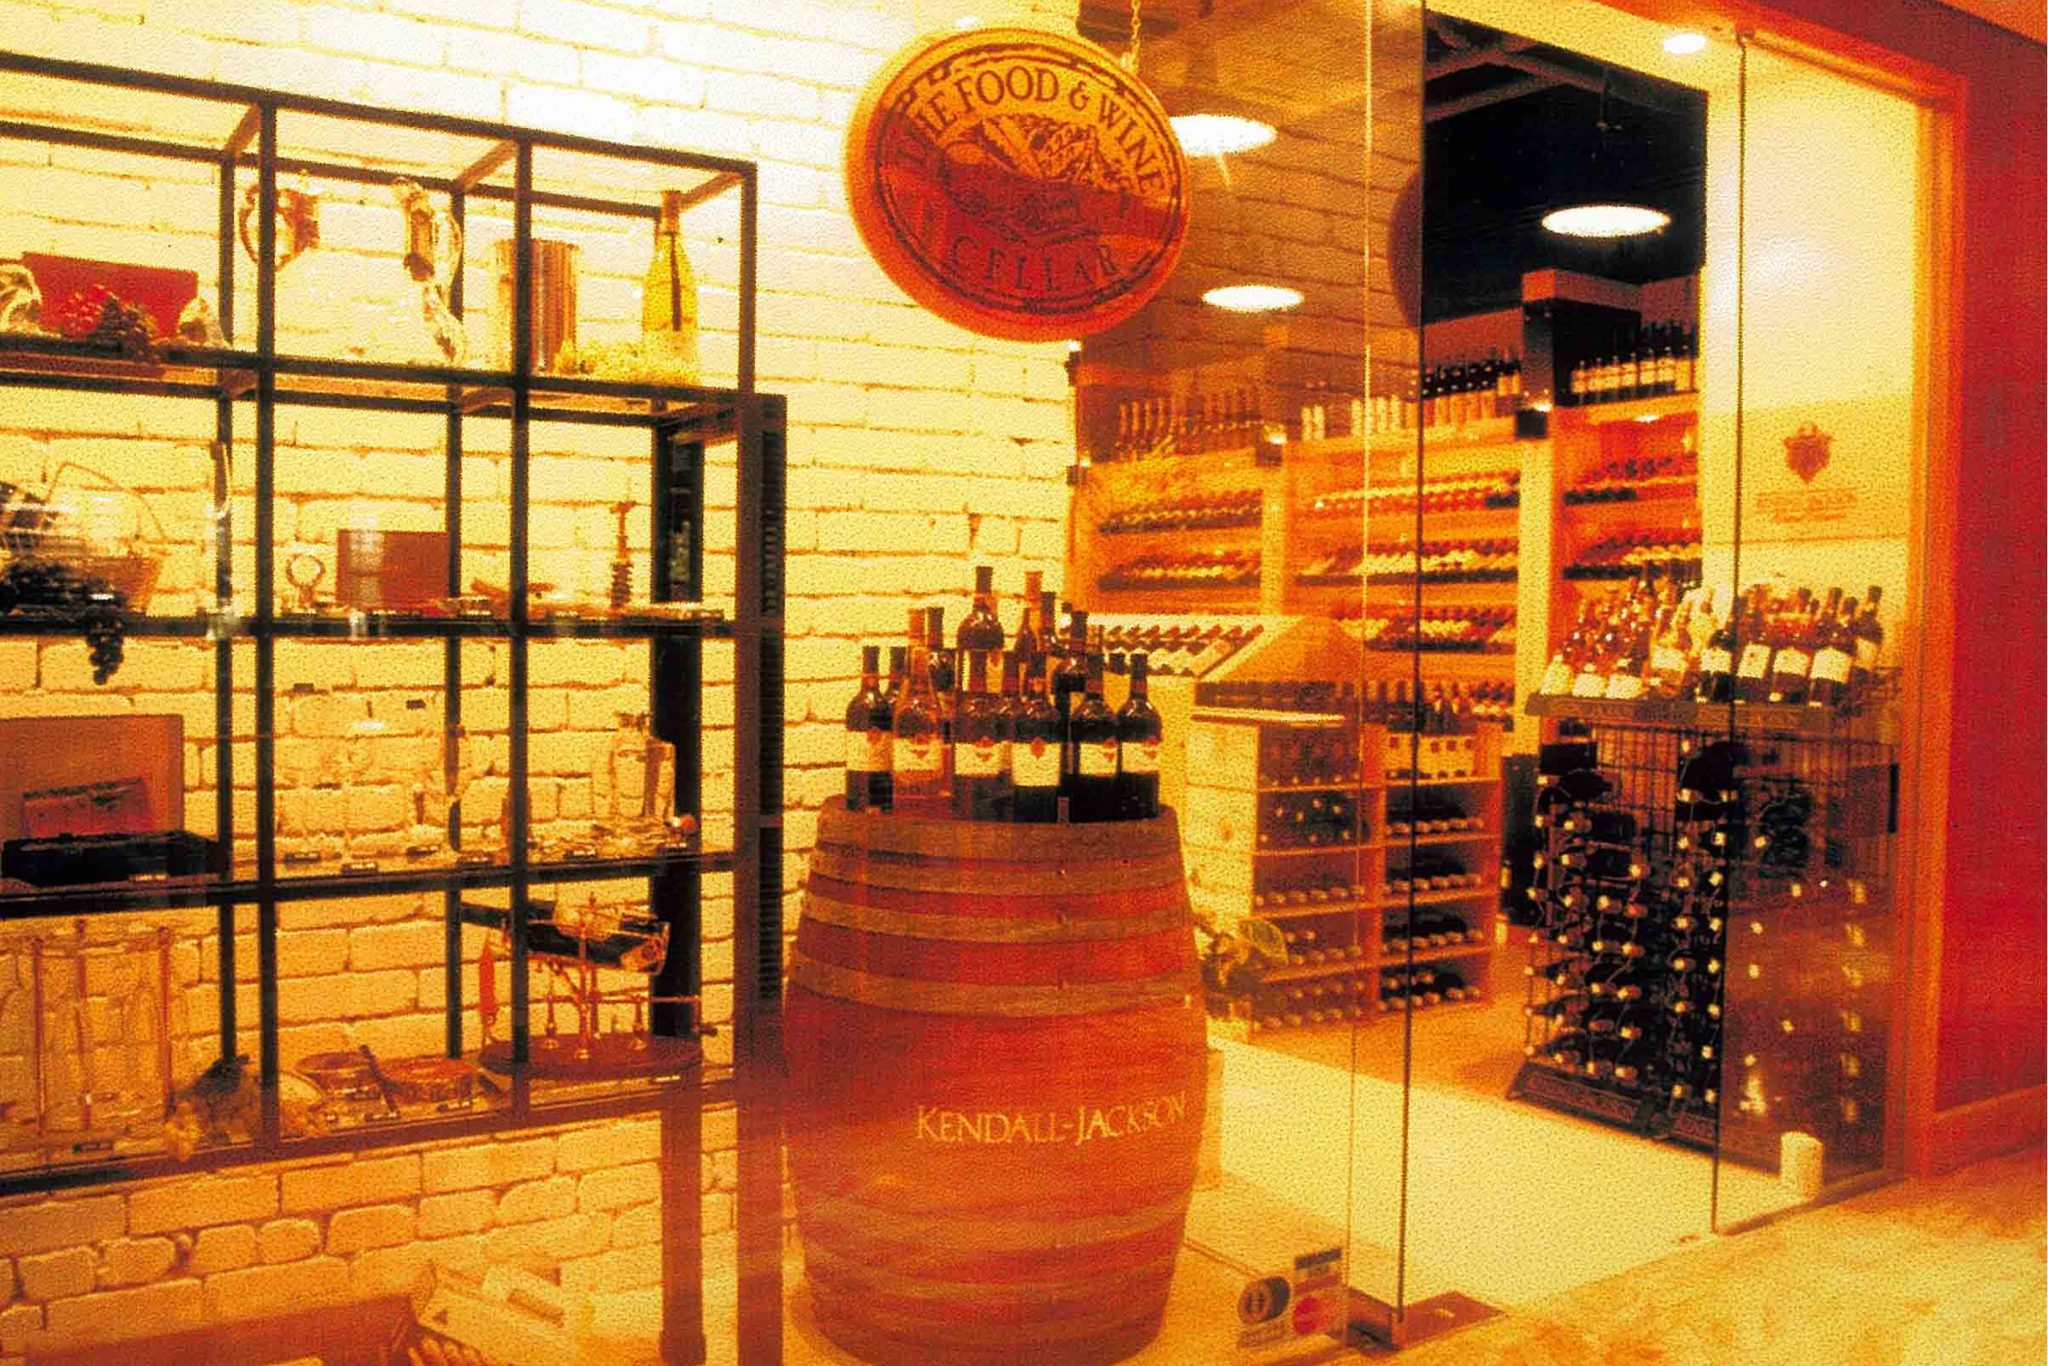 Food & Wine Cellar Retail Store – Happy Valley